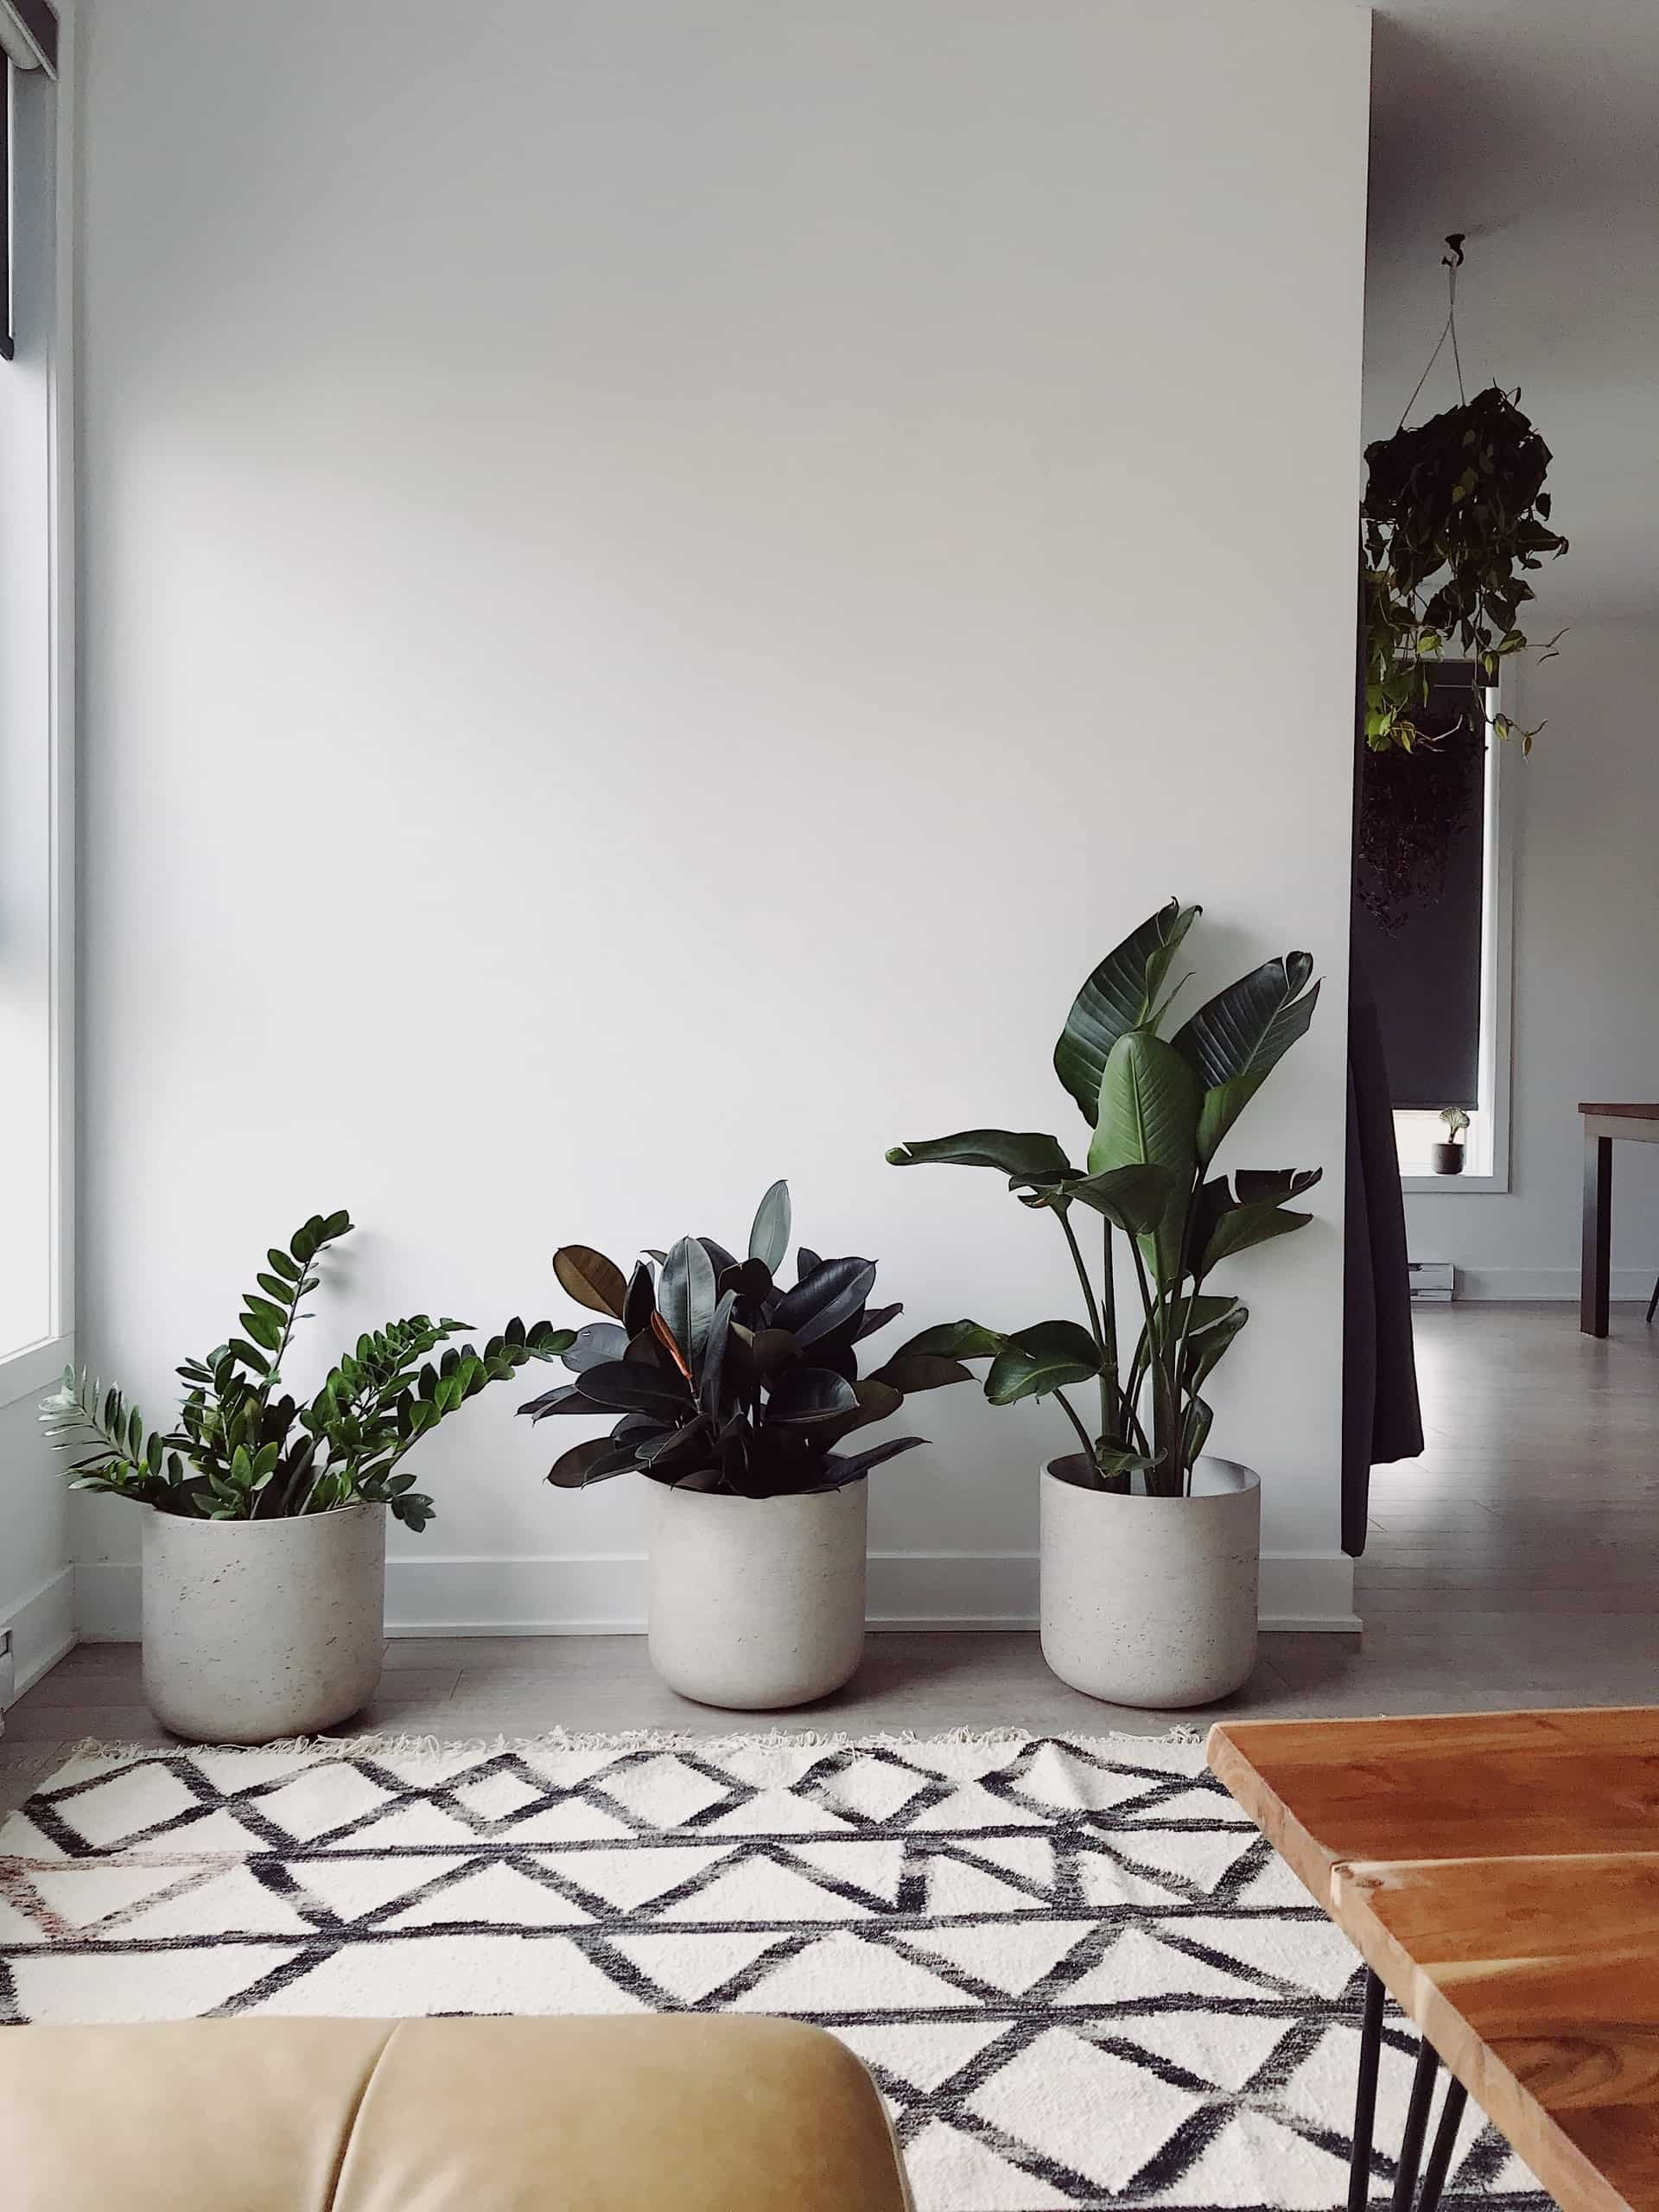 Why Are Indoor Plants Important For a Healthy House?